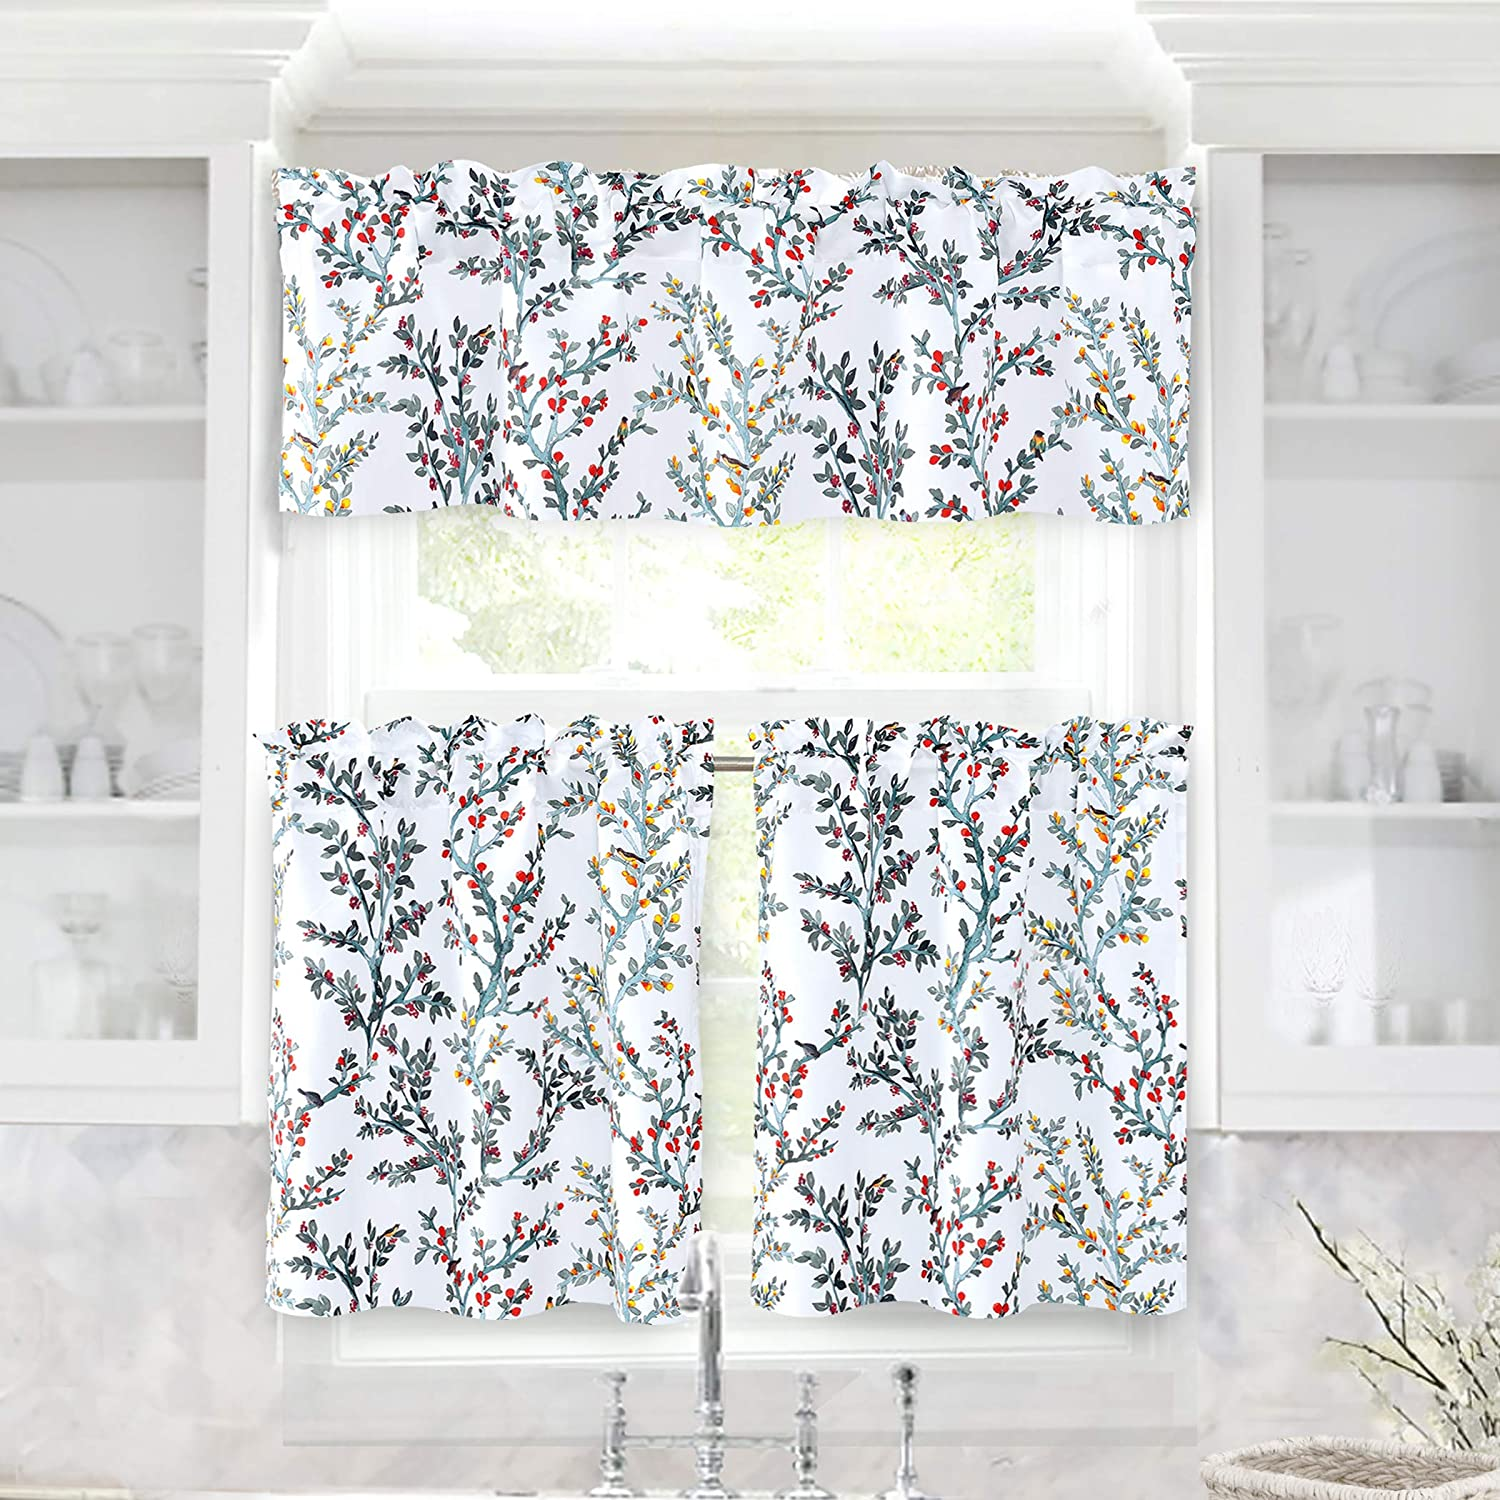 DriftAway Jasmine Watercolor Branch Botanical Semi Sheer 3 Pieces Rod Pocket Kitchen Window Curtain Set with 2 Tiers 26 Inch by 24 Inch Each and 1 Valance 52 Inch by 14 Inch Multi